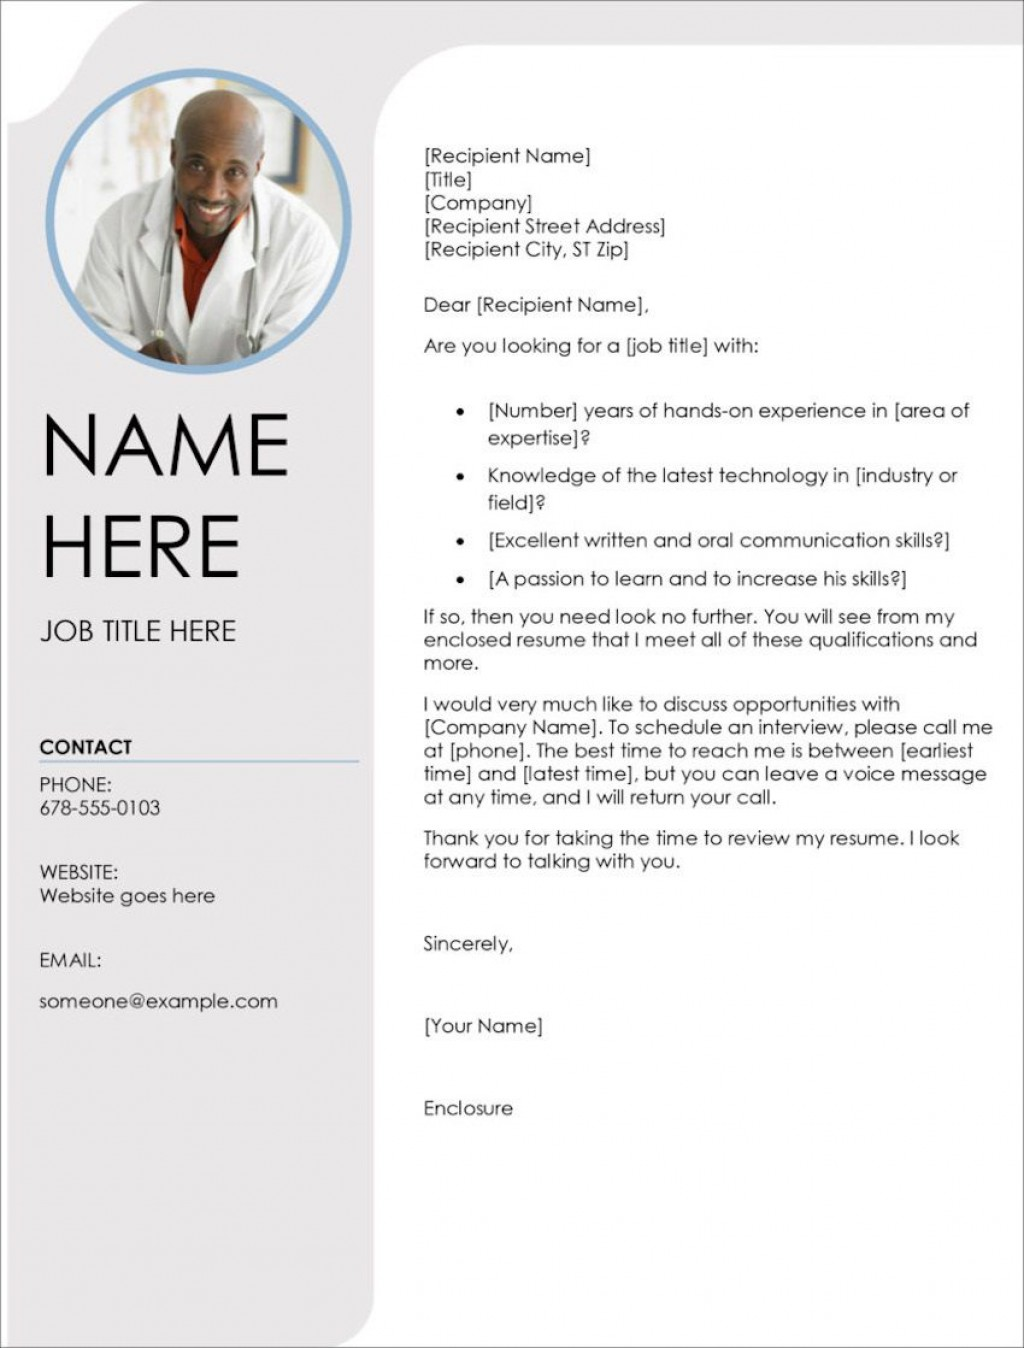 007 Marvelou Microsoft Word Letter Template Photo  Free Download M Of ResignationLarge